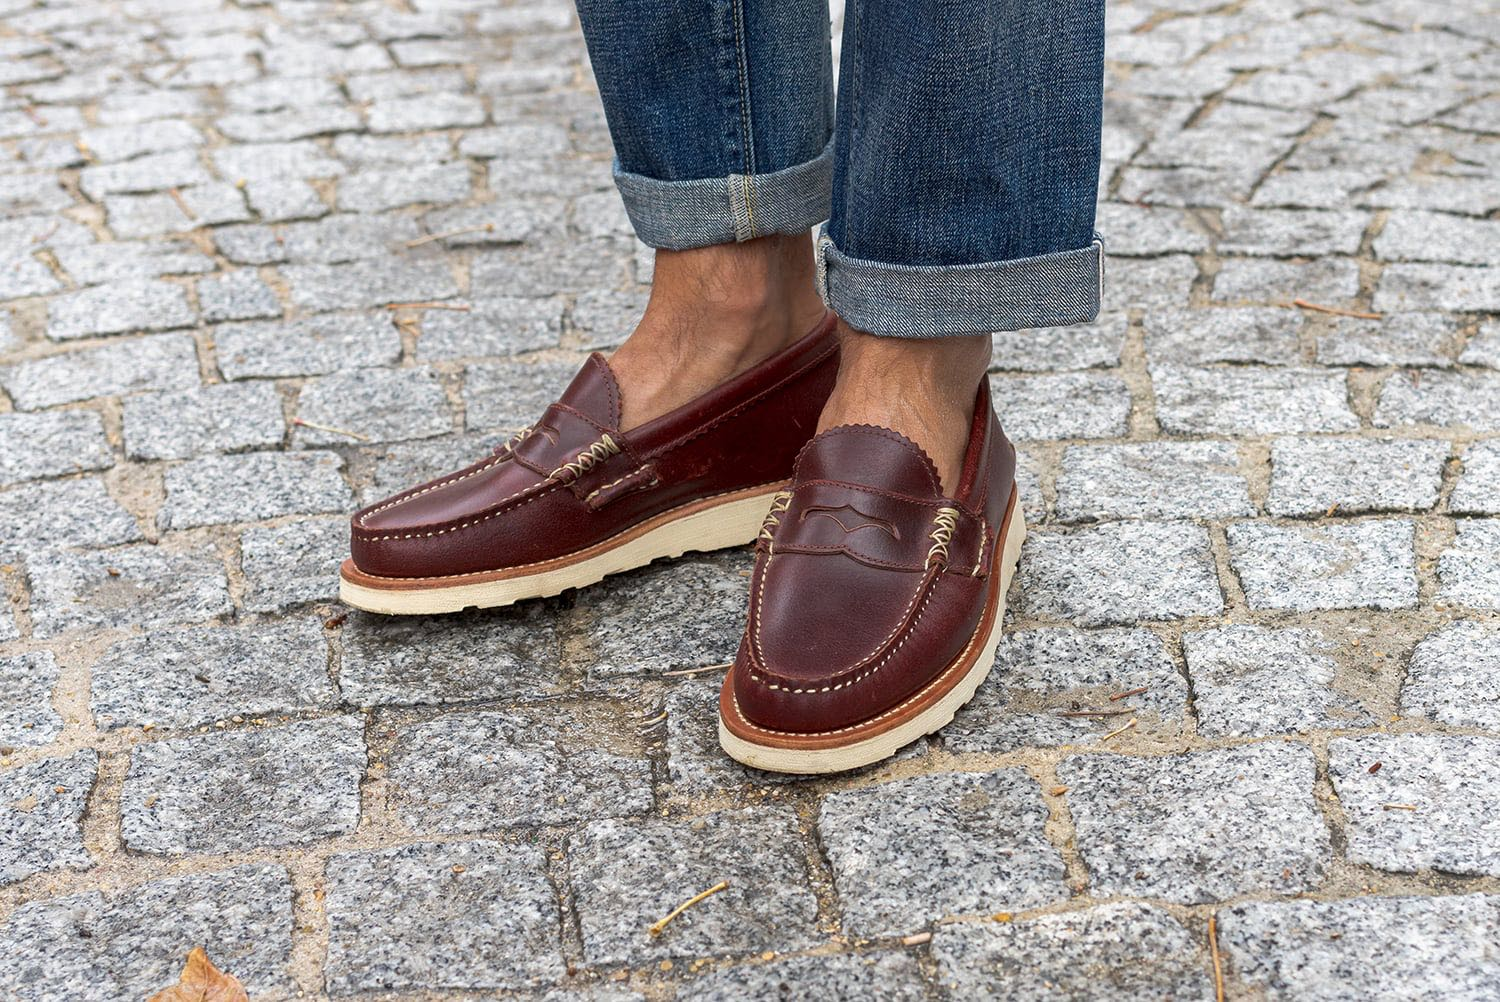 penny loafers Yuketen horween leather vibram soles